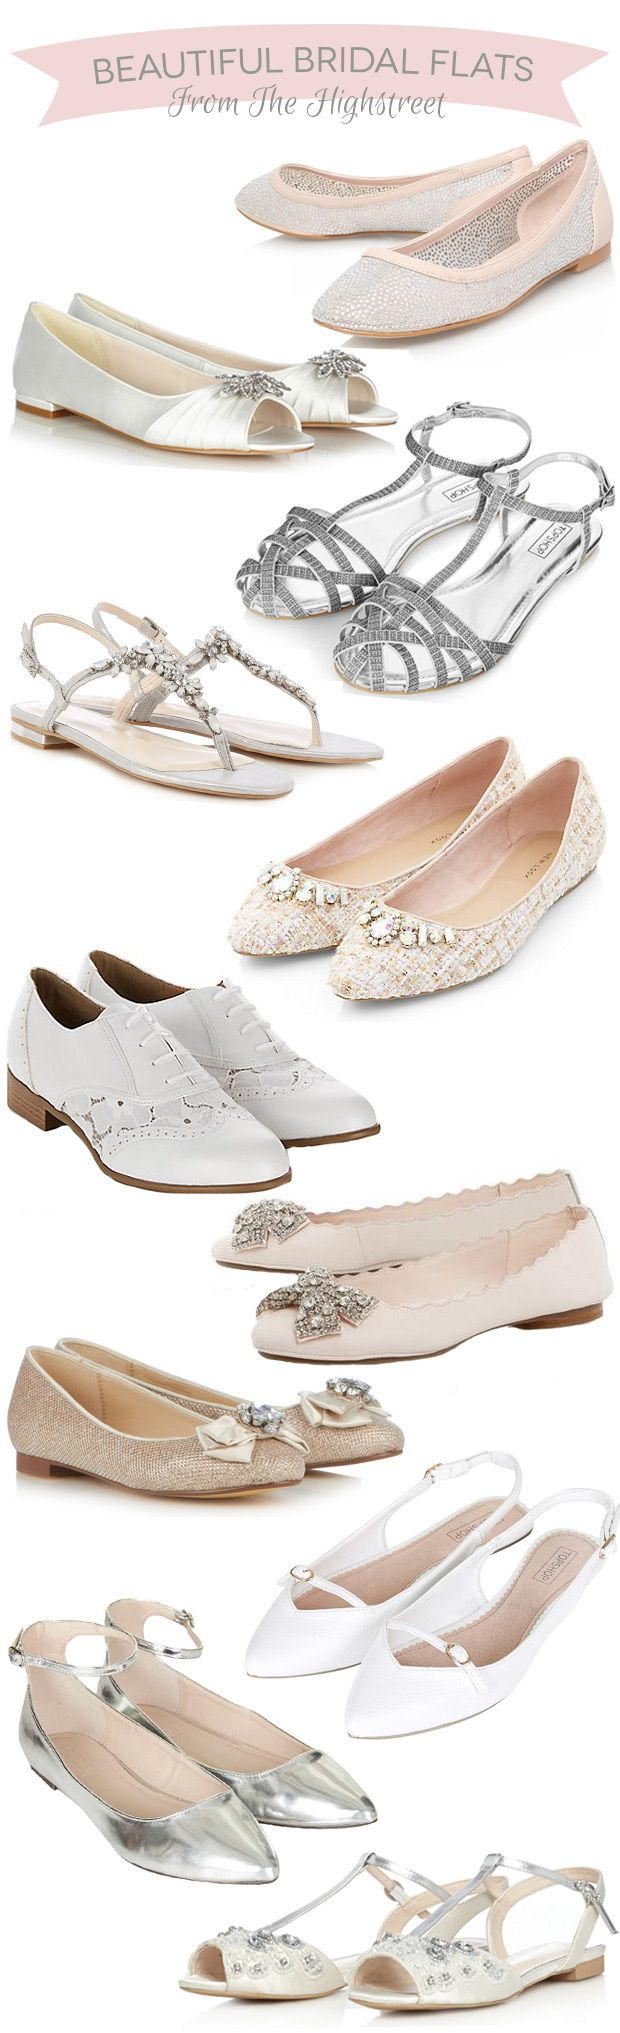 Beautiful Flat Bridal Shoes from The Highstreet   www.onefabday.com